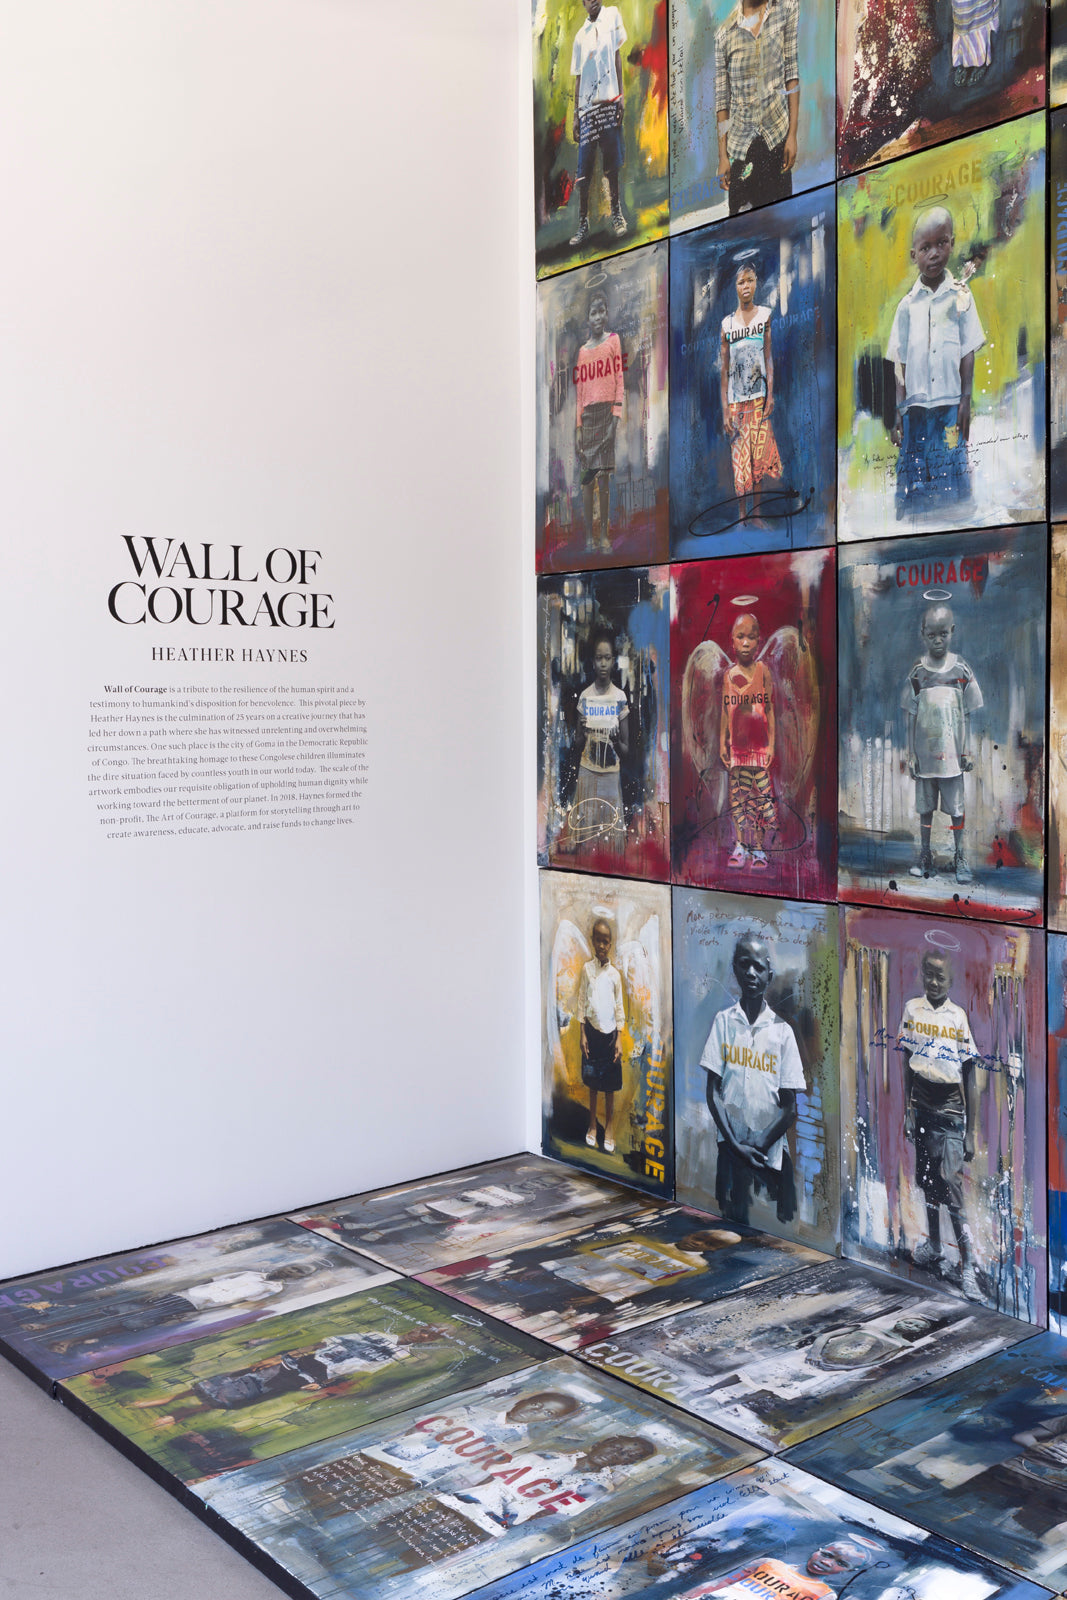 Wall of Courage: Nicolas